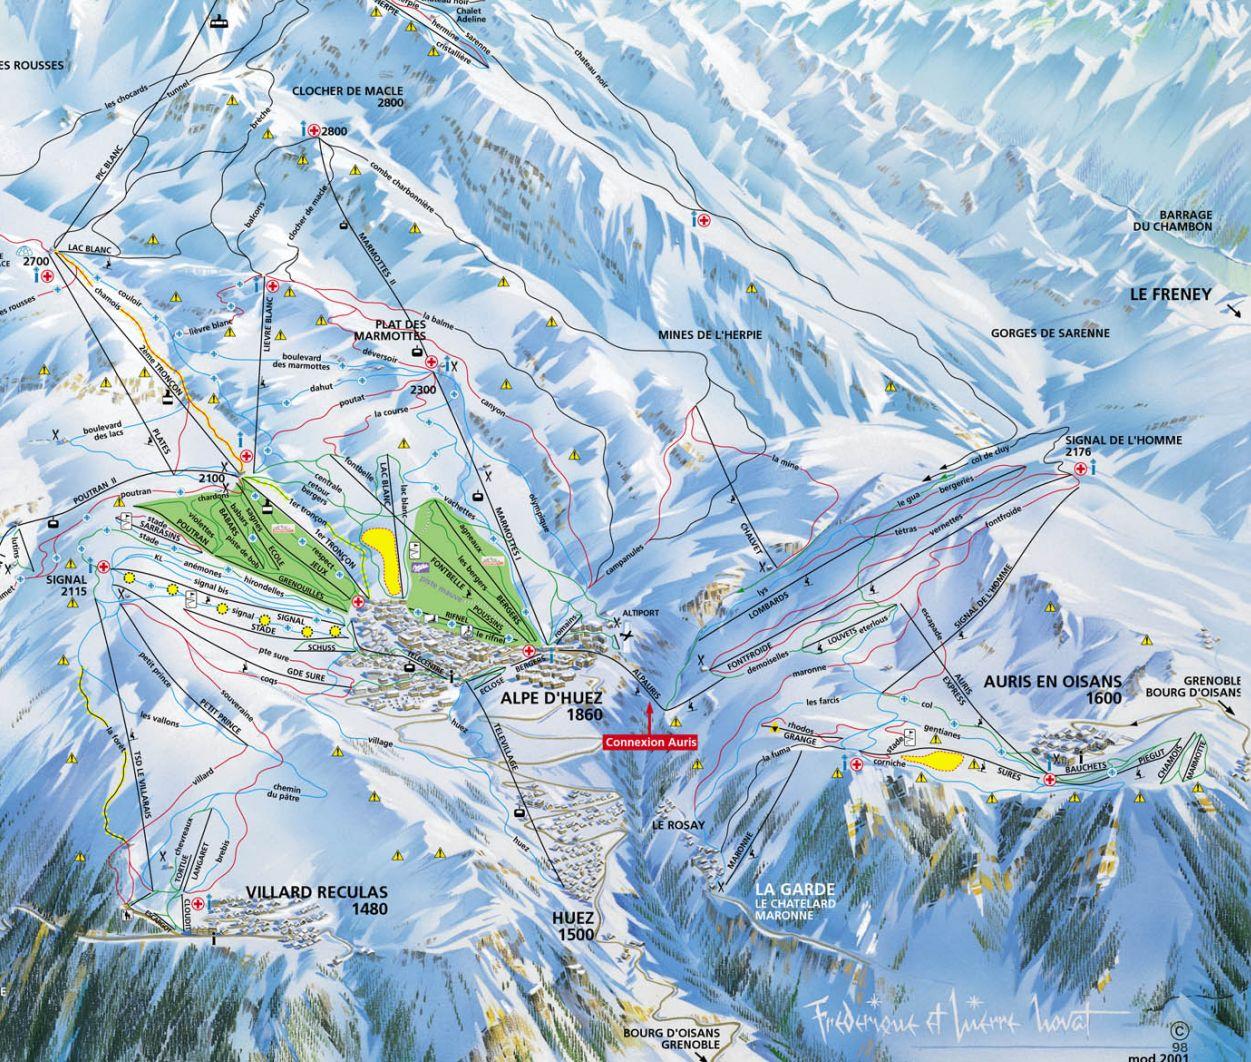 Auris En Oisans Piste / Trail Map